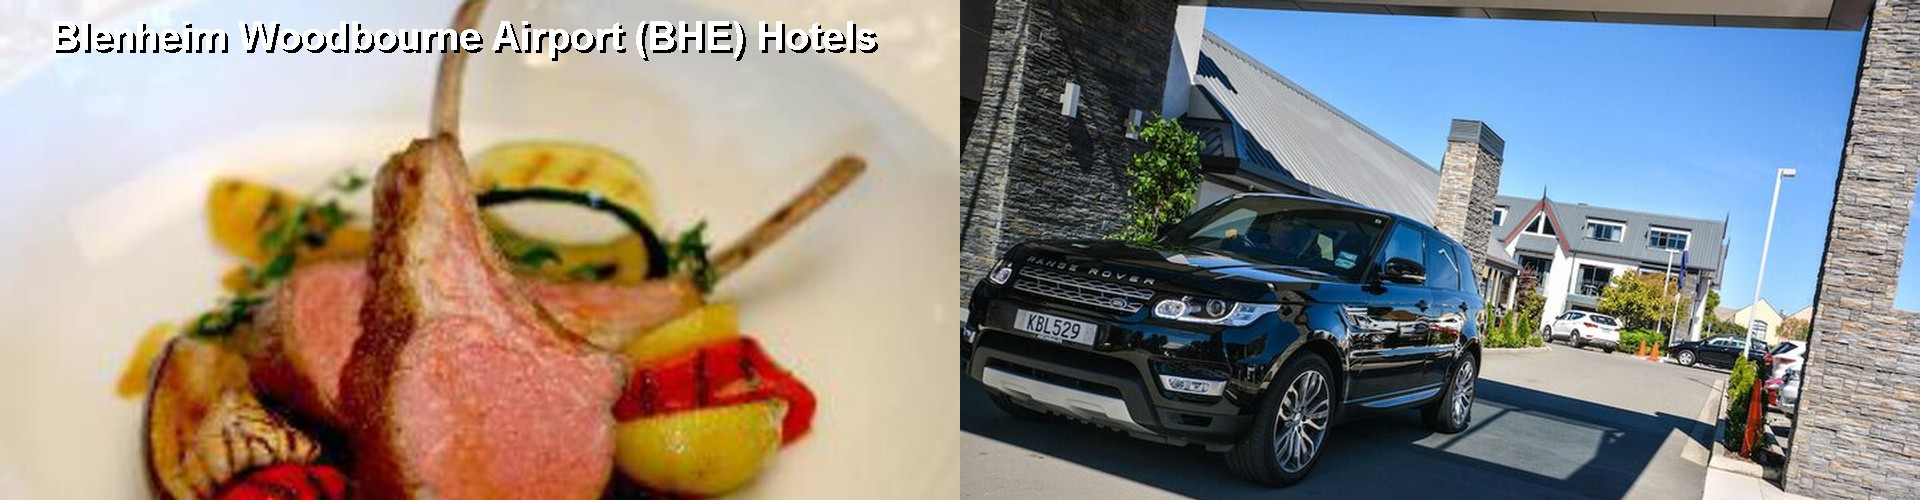 4 Best Hotels near Blenheim Woodbourne Airport (BHE)